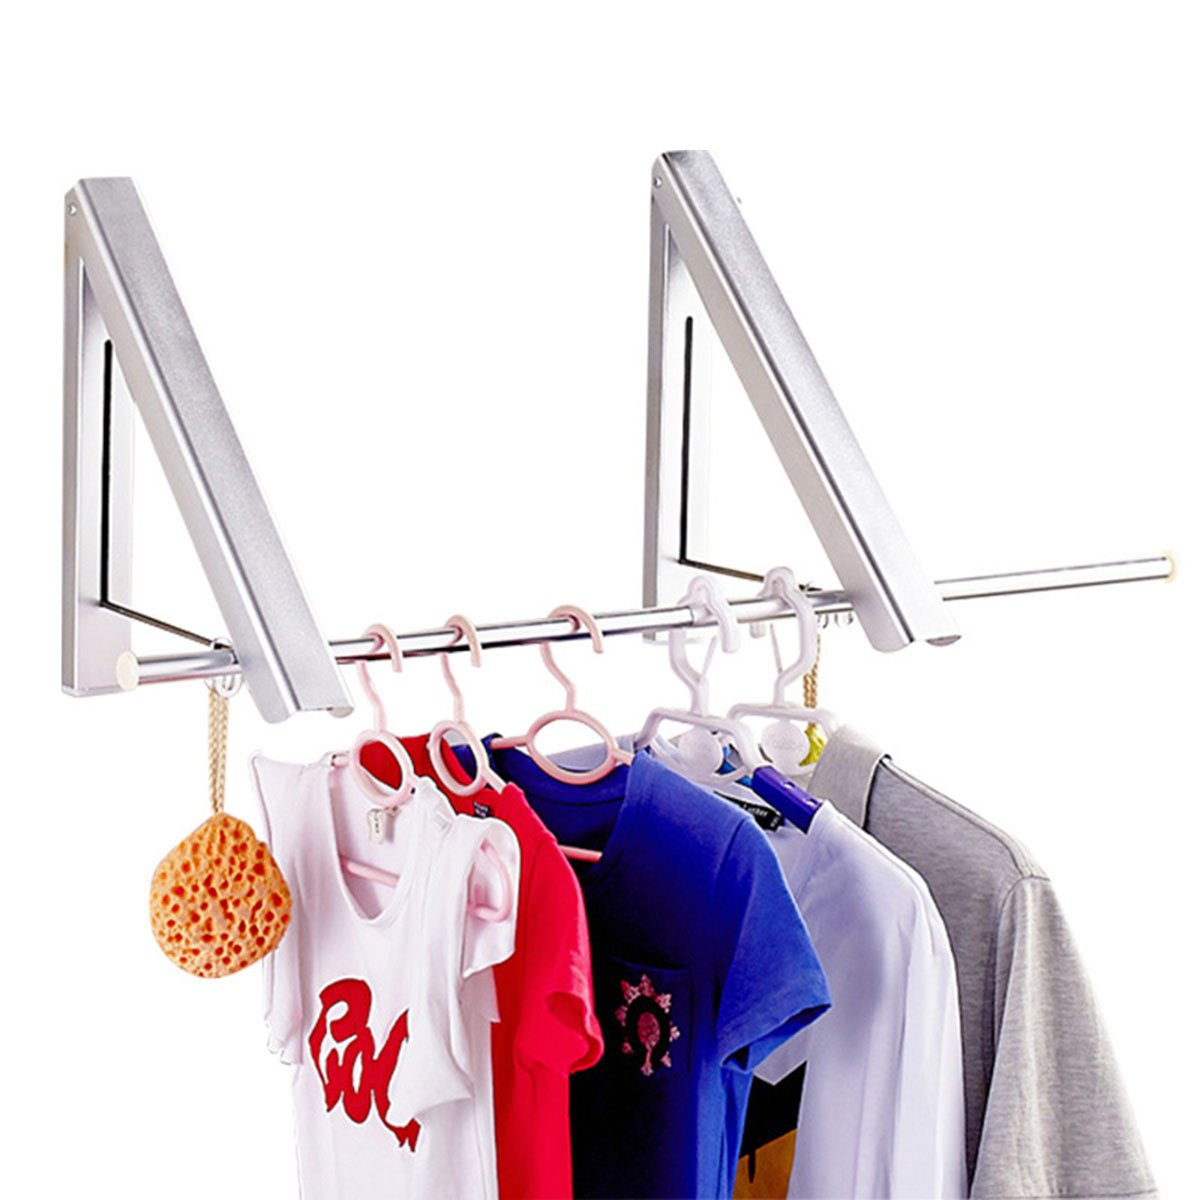 Yesurprise Wall Mounted Clothes Hanger Folding Closet Rods Retractable Clothes Rack Drying Coat Racks Portable Closet Storage Organizer Space Savers for Home Bathroom Bedroom Lavatory Balcony Laundry